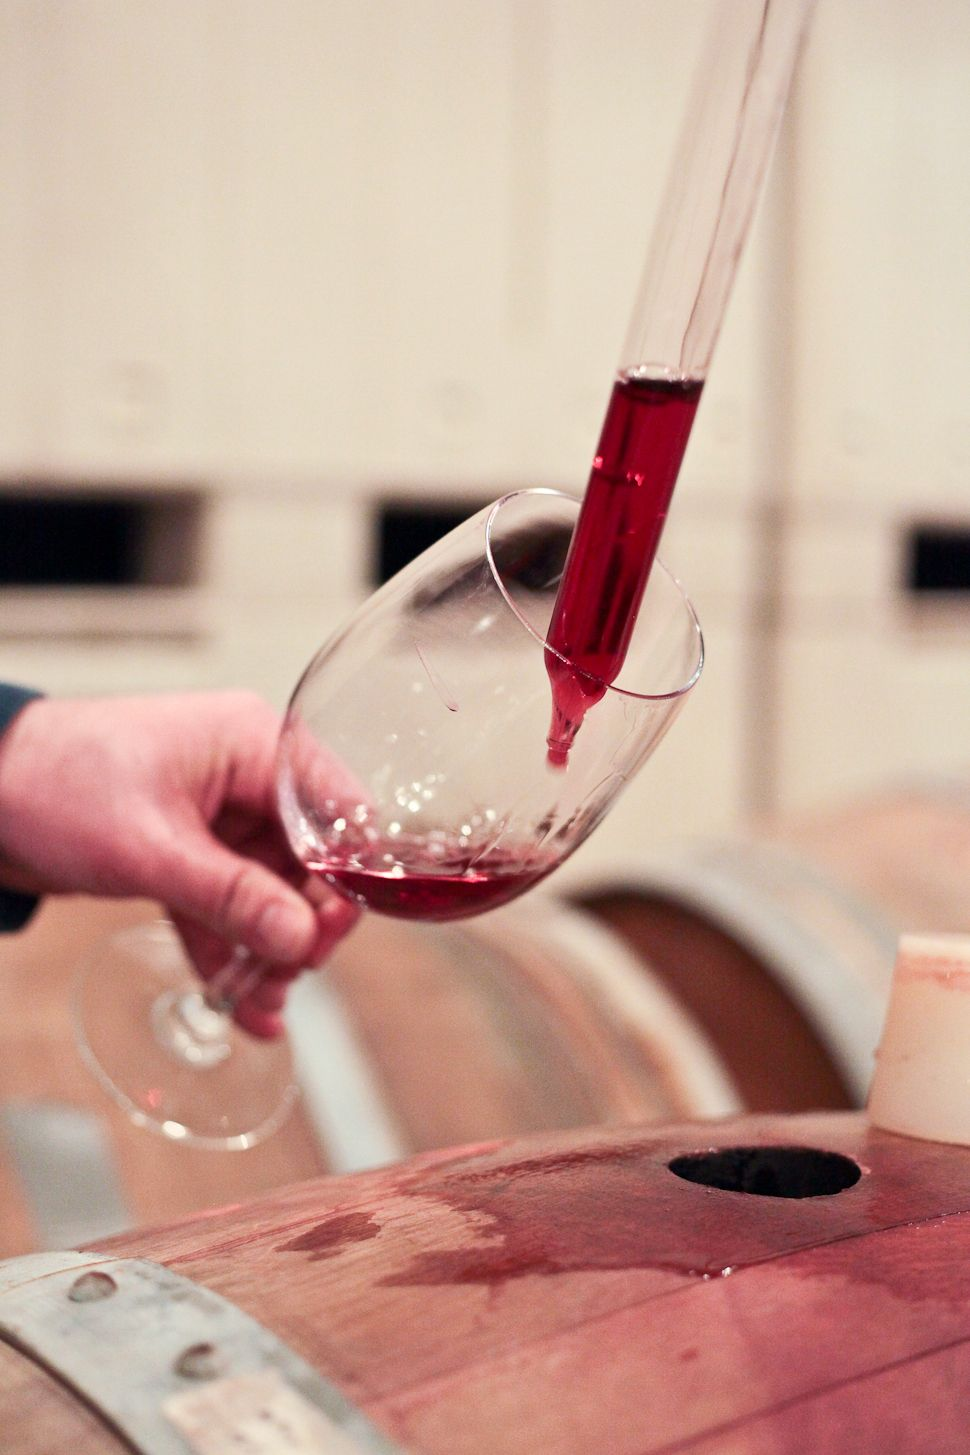 Barrel Tasting One Of The Final Steps Of The Winemaking Process With Images Wine Thief Wine Winemaking